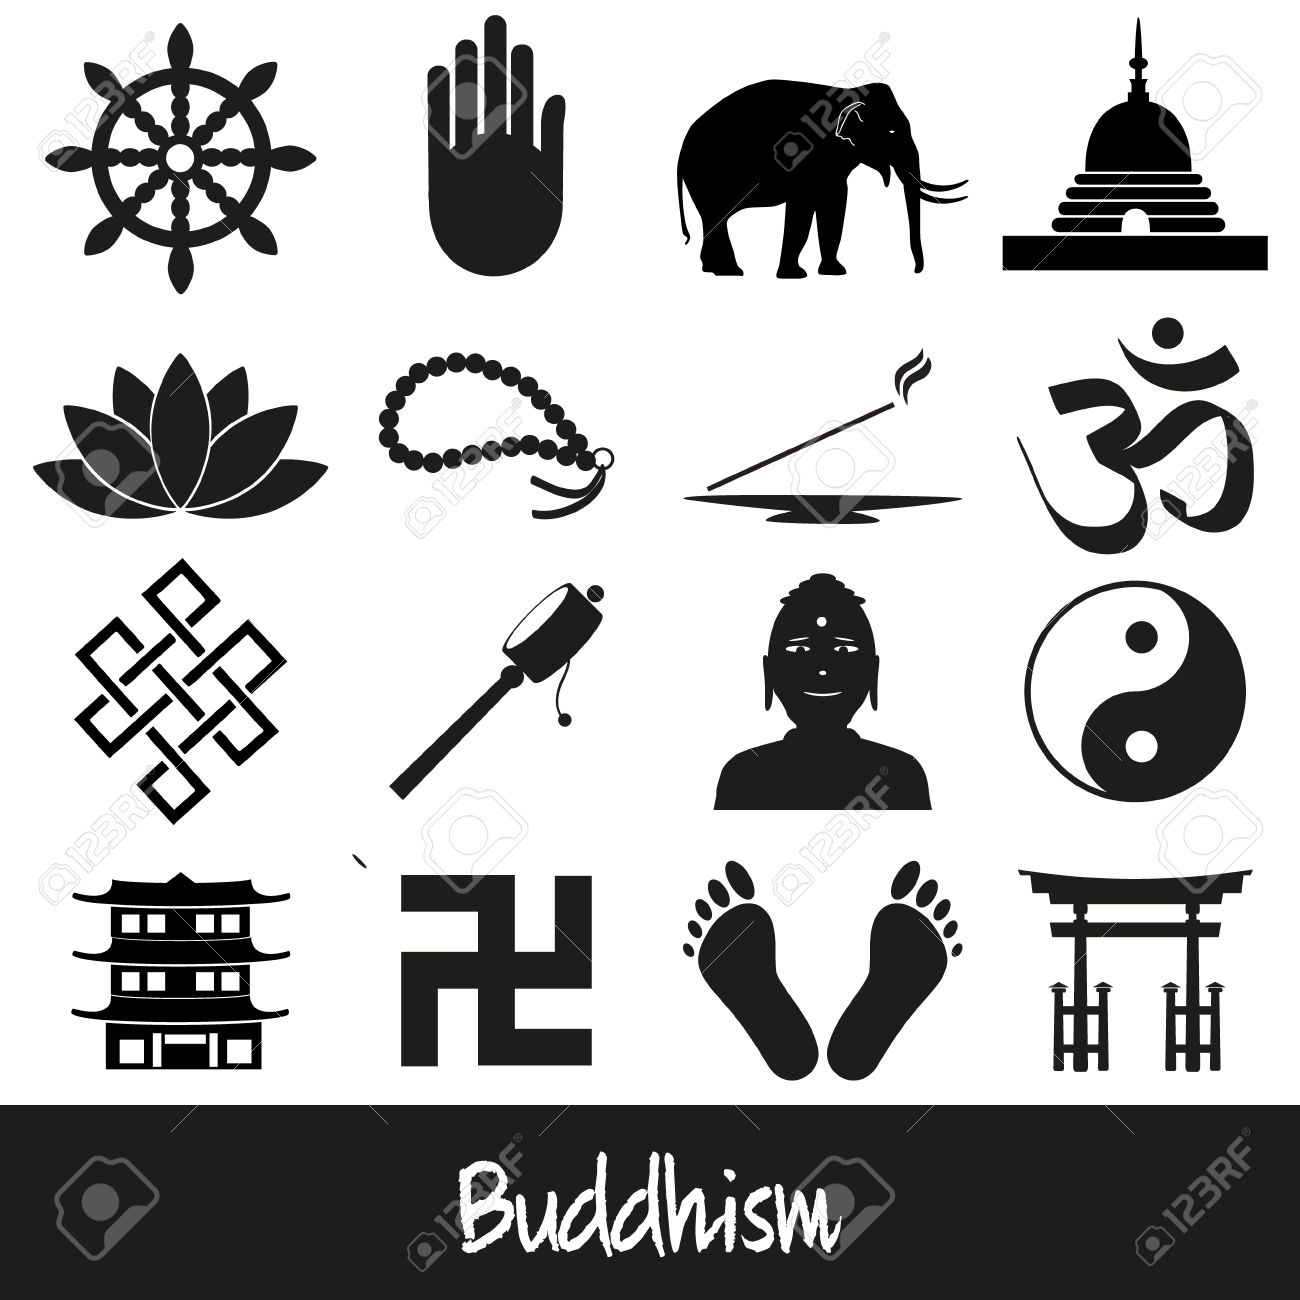 Buddhism religions symbols vector set of icons royalty free buddhism religions symbols vector set of icons stock vector 43584801 biocorpaavc